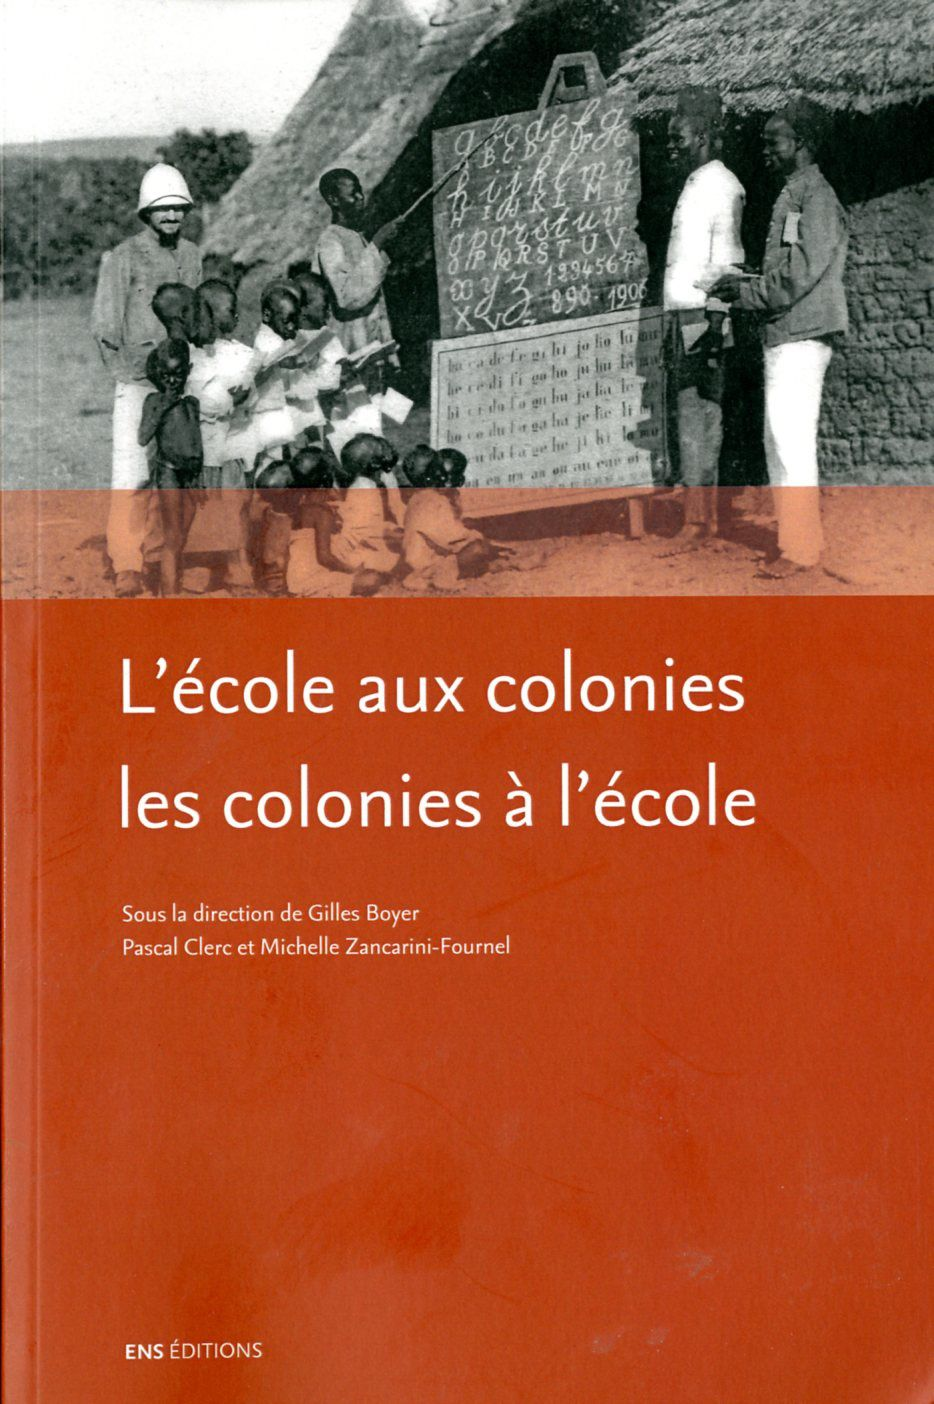 Enseignement colonial